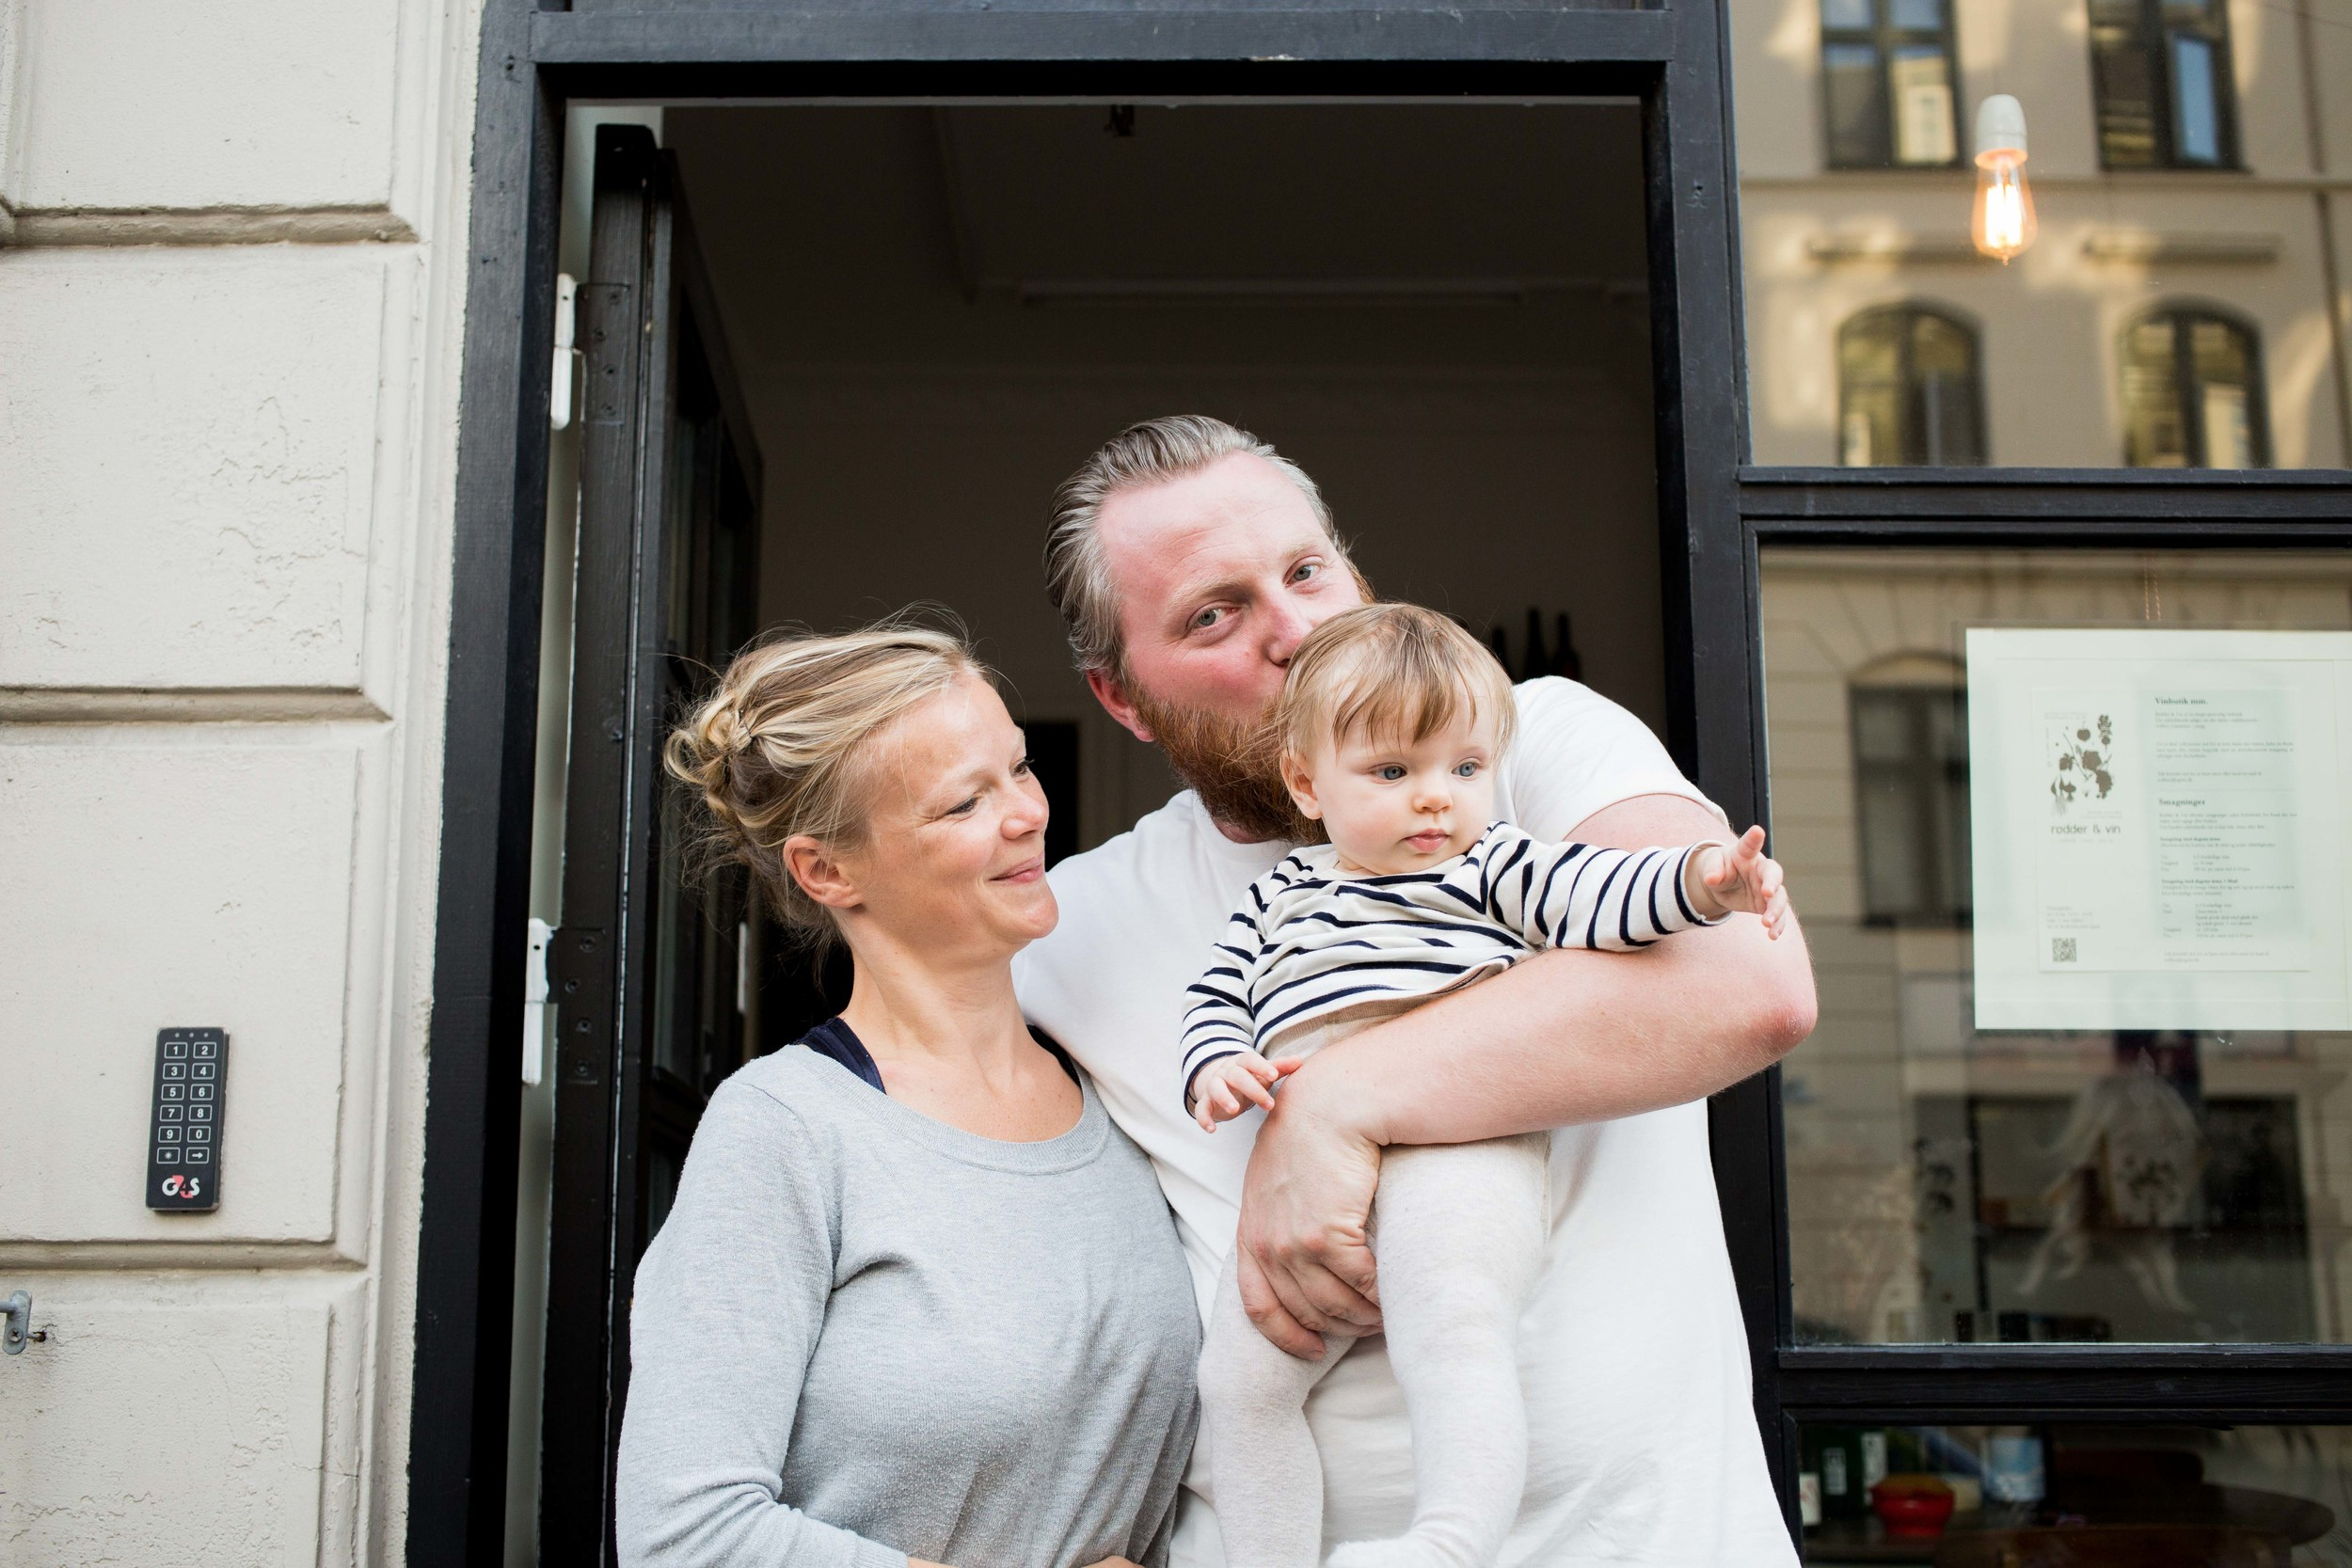 Solfinn and his beautiful family. They had just spend 3 weeks in Paris for their holiday and were back in Denmark to cook up a storm.